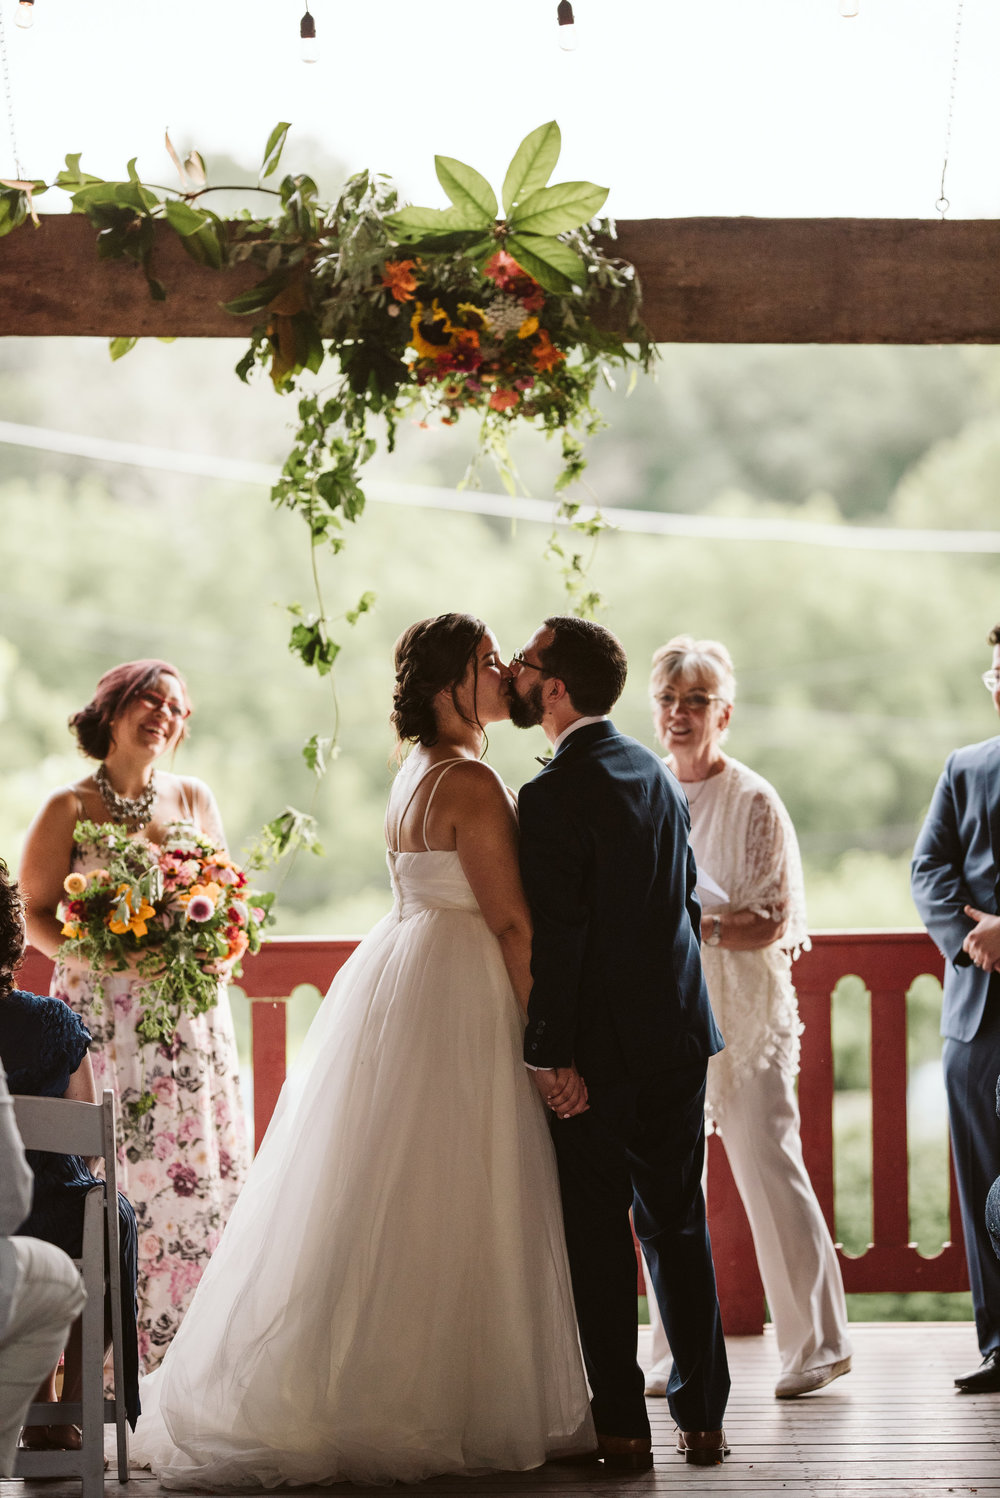 Rocklands Farm, Maryland, Intimate Wedding, Baltimore Wedding Photographer, Sungold Flower Co, Rustic, Romantic, Barn Wedding, Bride and Groom First Kiss Under Flowers